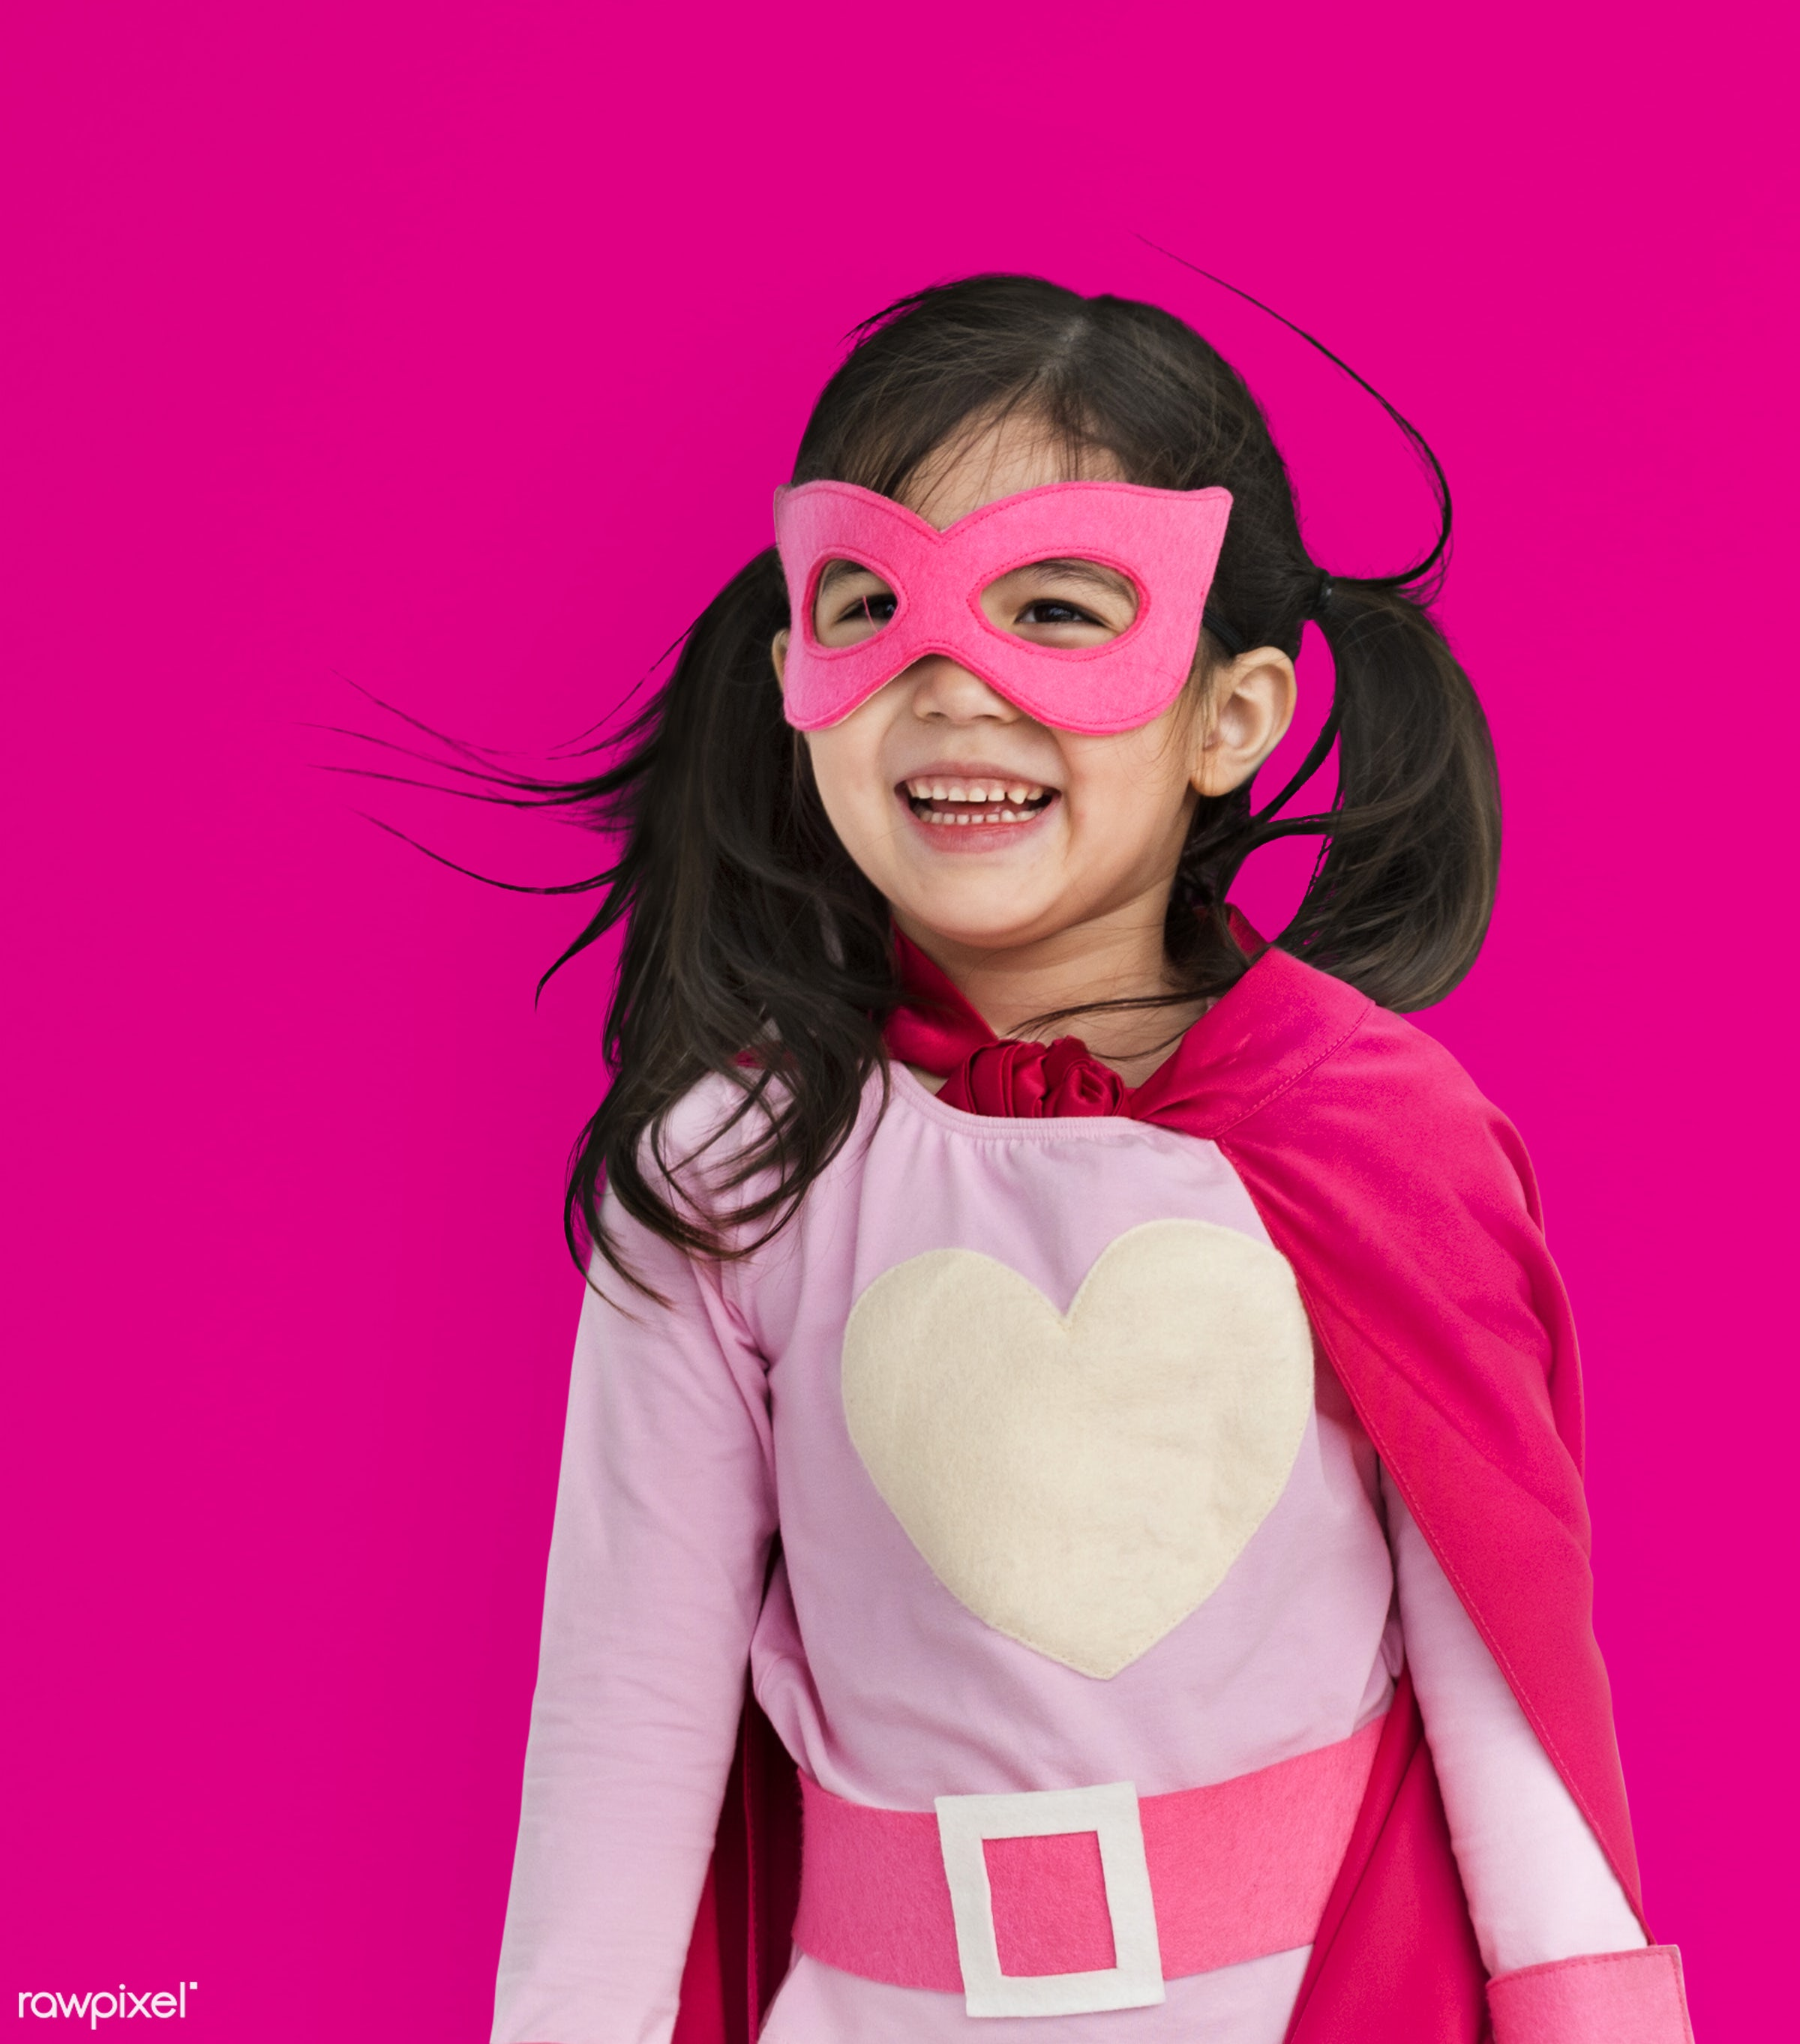 alone, asian, cheerful, child, costume, girl, isolated, kid, one, playful, smiling, studio, superhero, young, youth